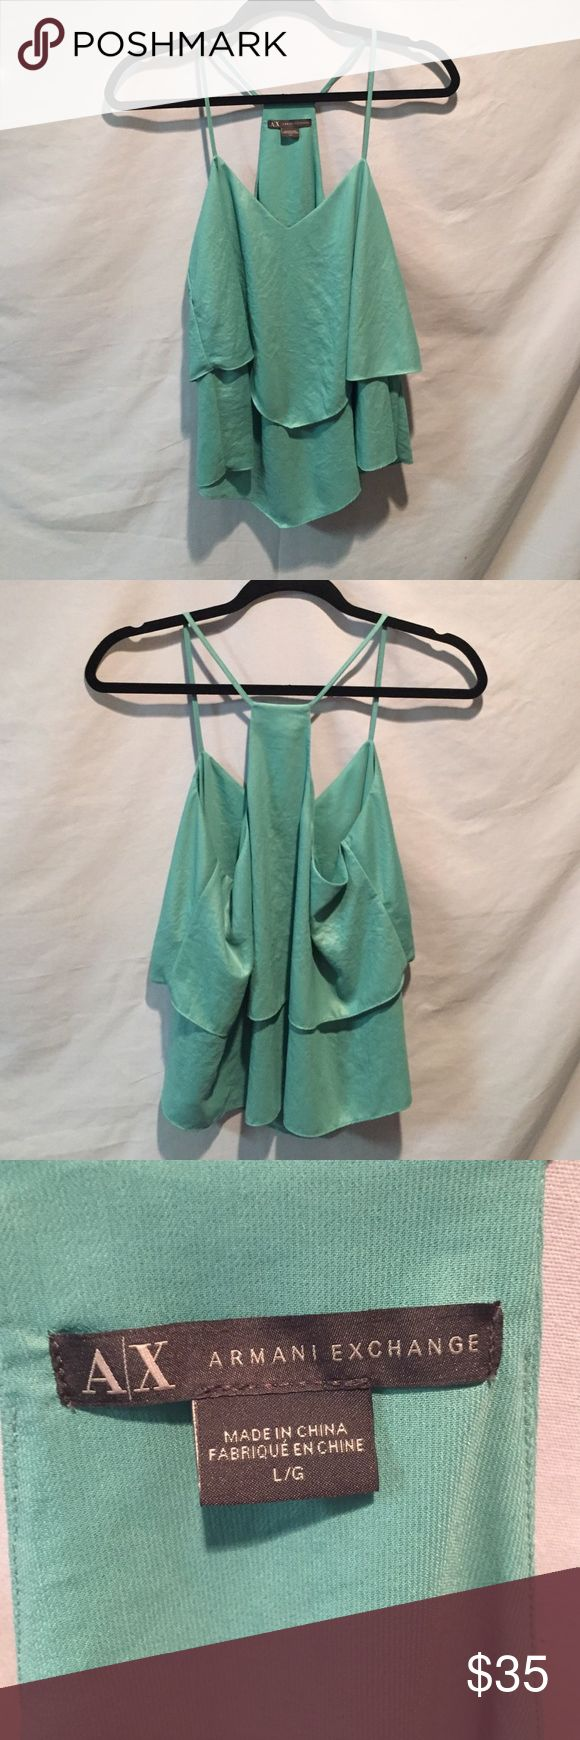 SALE 🔥Armani Exchange Tank Top Beautiful soft mint green Armani Exchange tank top. Perfect for that night out with jeans and boots! Armani Exchange Tops Tank Tops